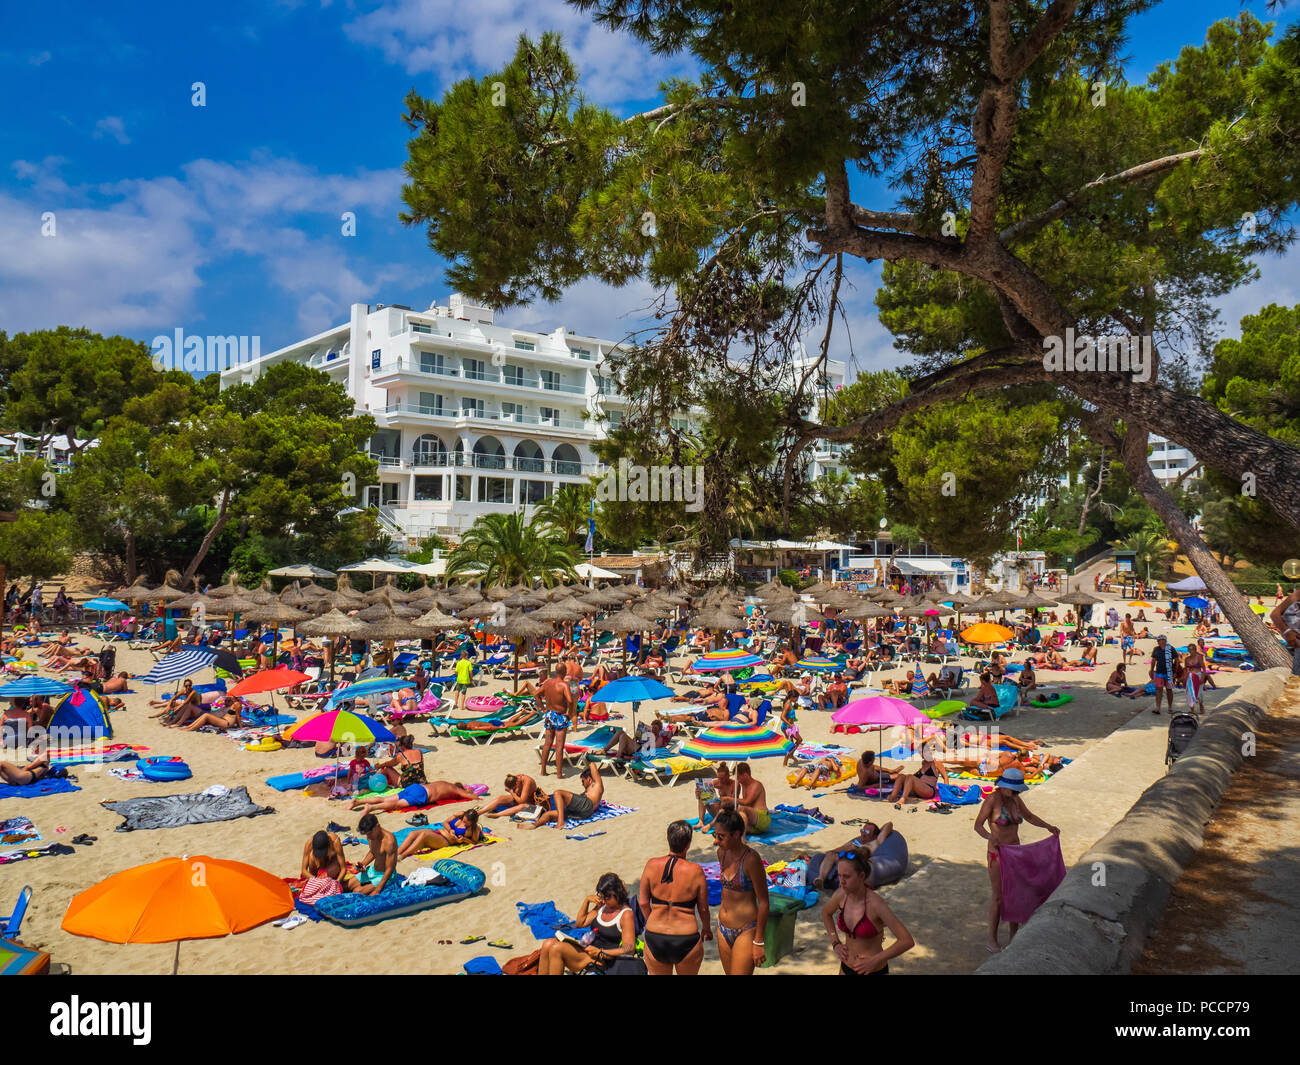 Cala Gran beach, Cala d'Or, Majorca, Spain - Stock Image